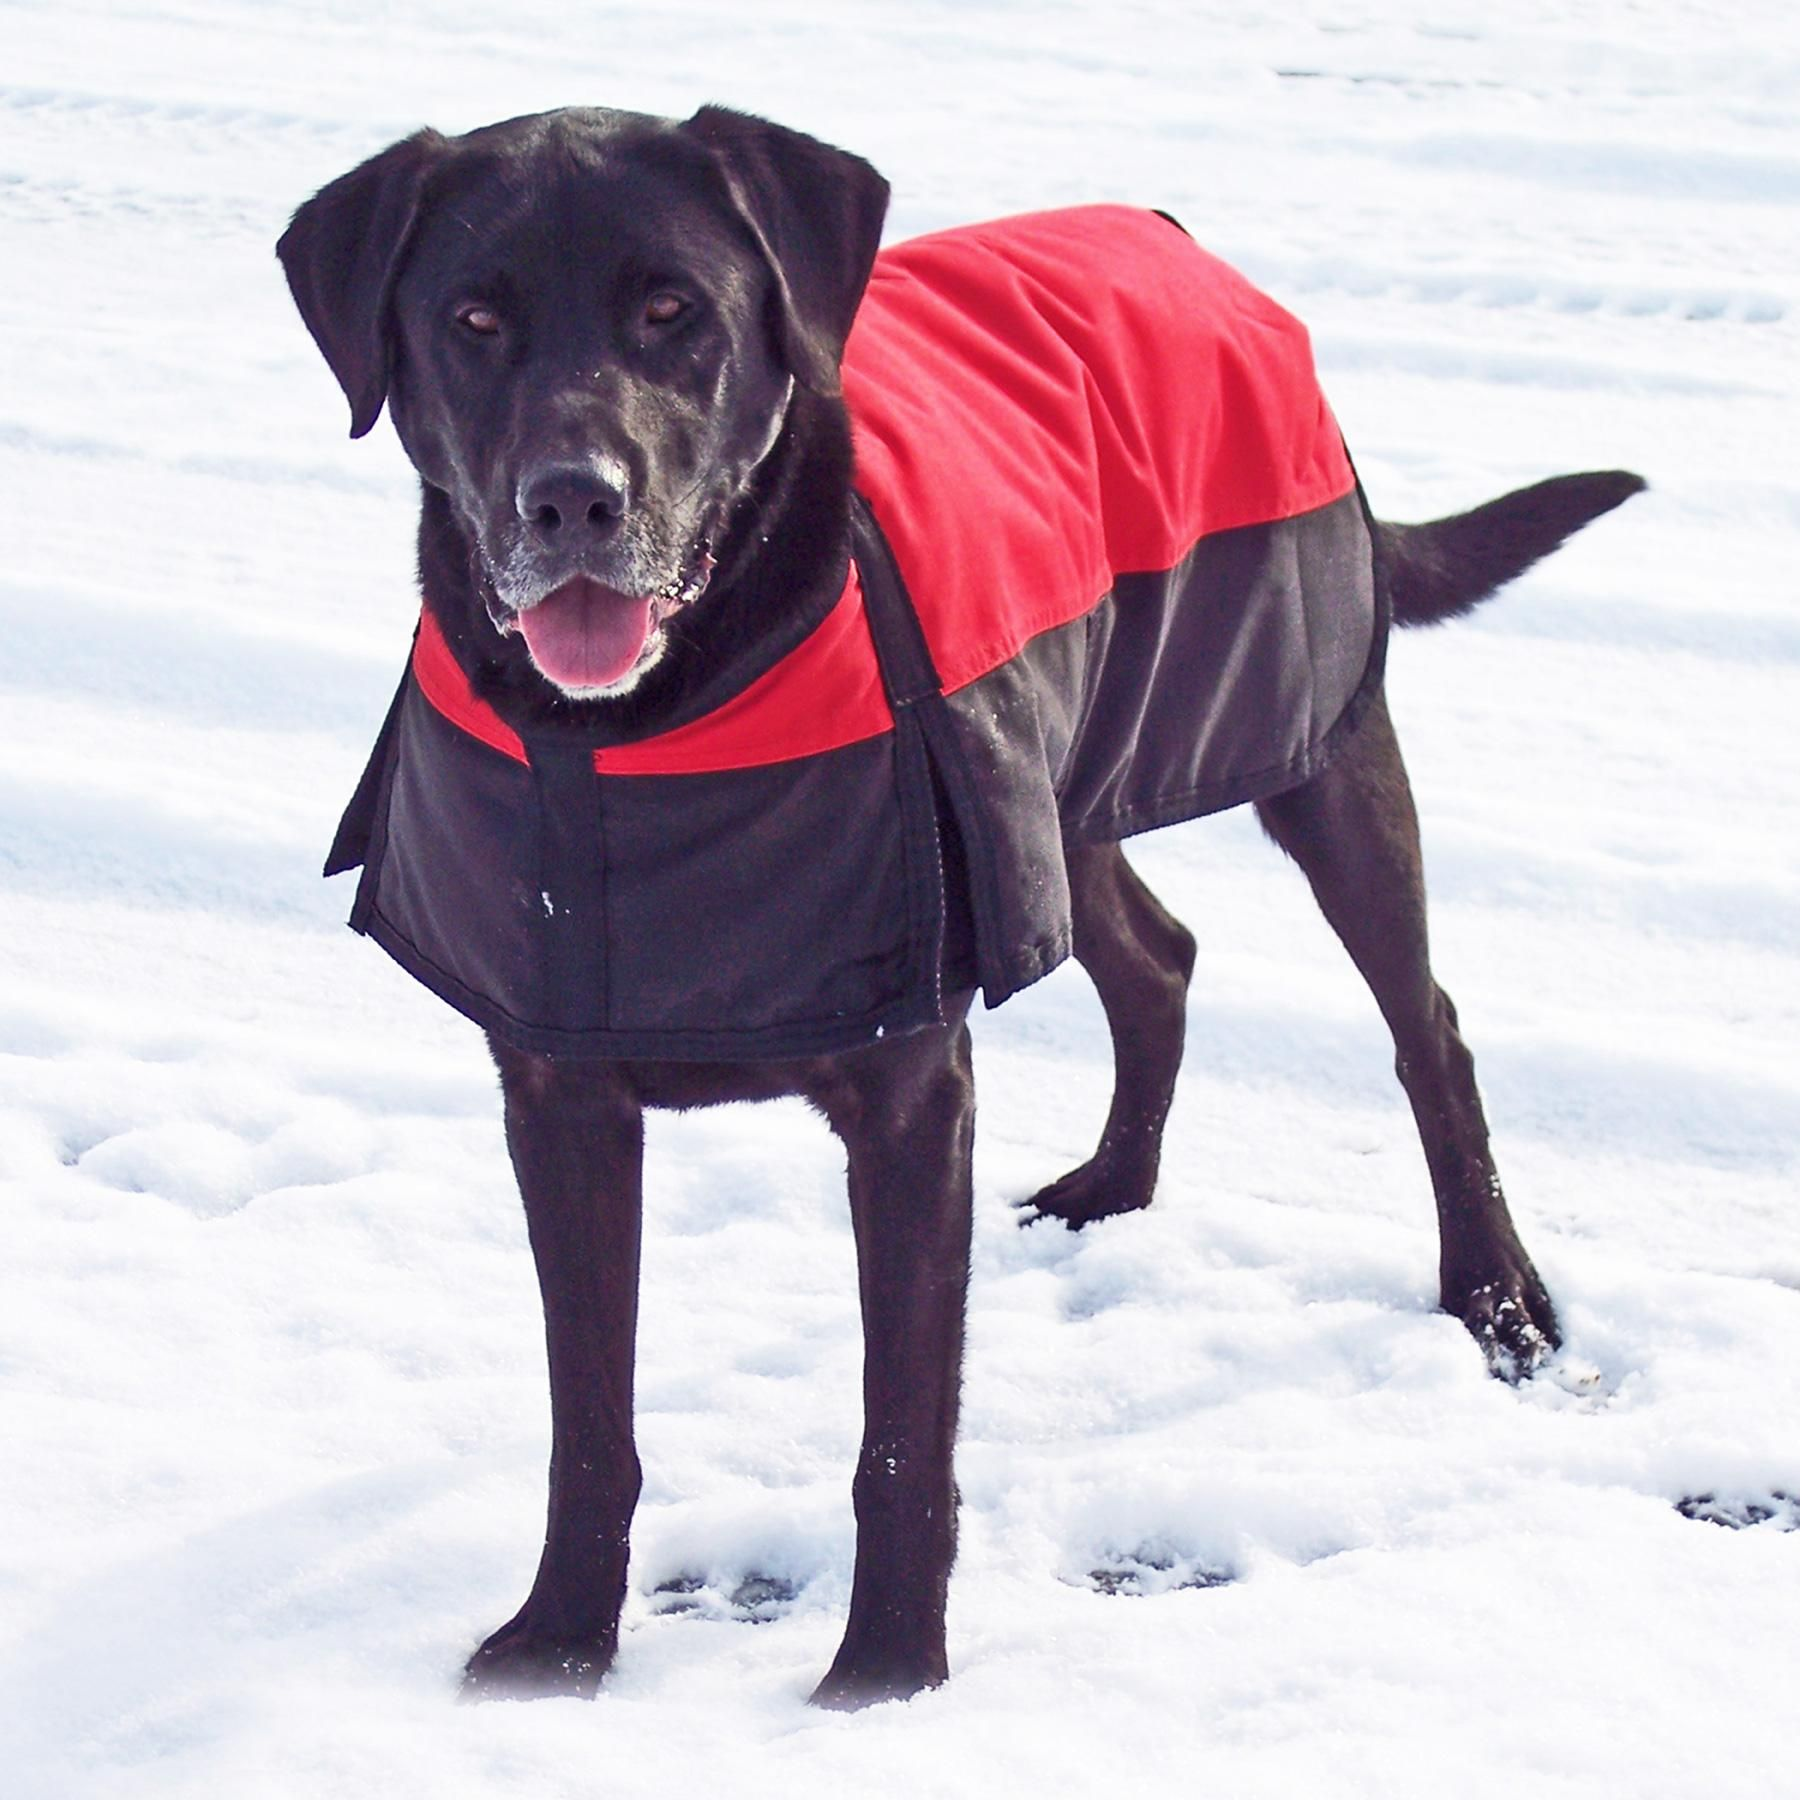 We Love Our Waterproof Insulated Dog Blankets Keep Your Best Friend Warm During Those Cold Winter Days Spent At The Waterproof Dog Coats Dog Coats Dog Clothes